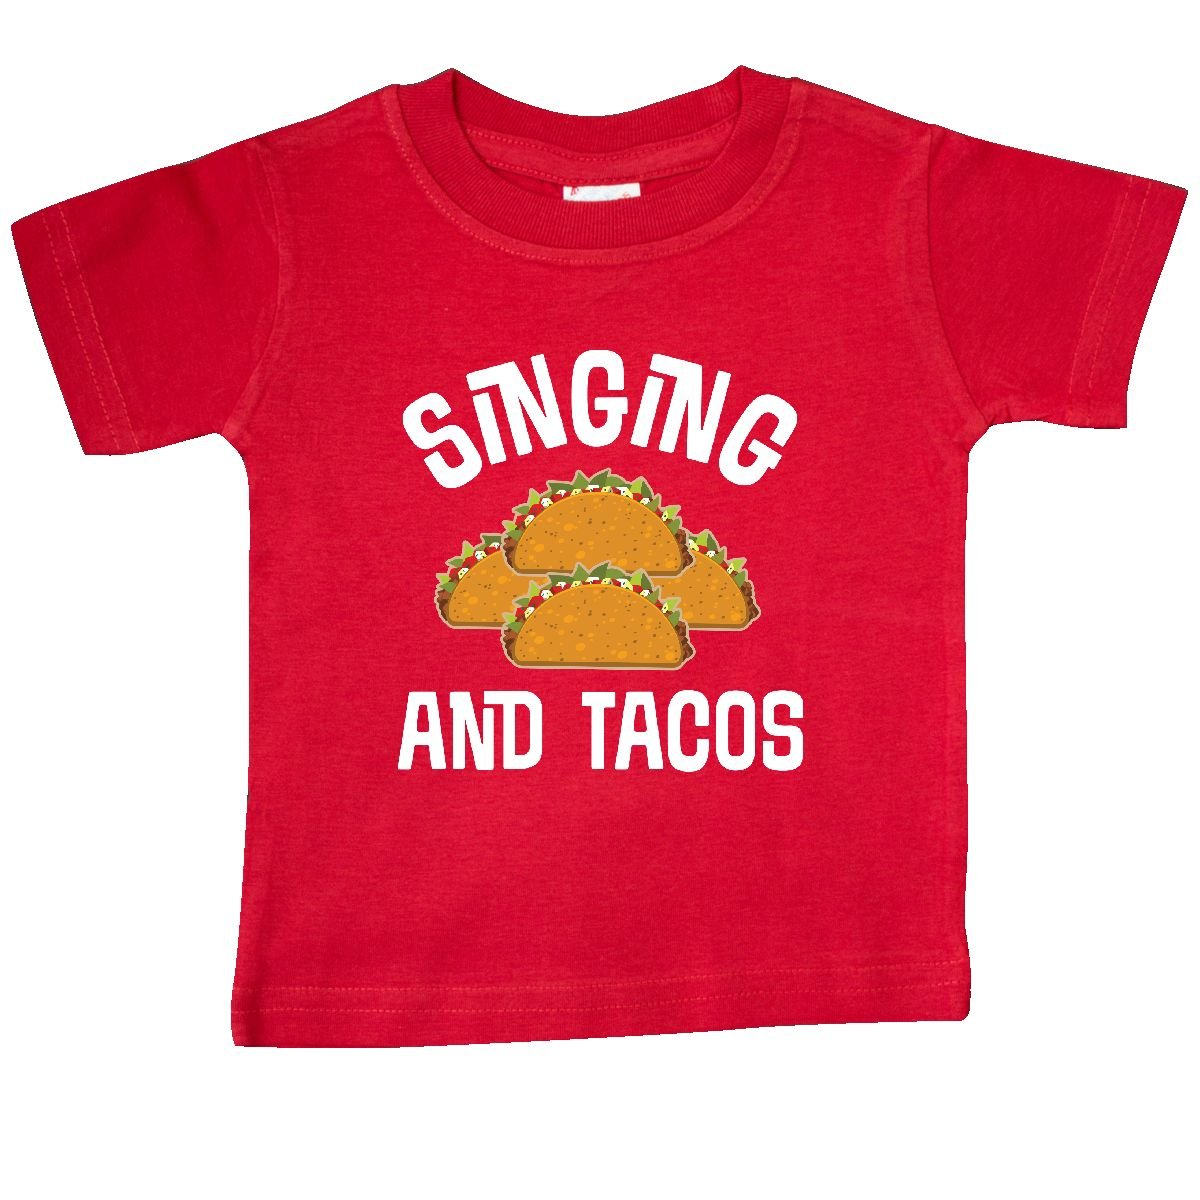 a0ba4b420 Amazon.com: inktastic - Singing and Tacos Funny Choir Baby T-Shirt: Clothing